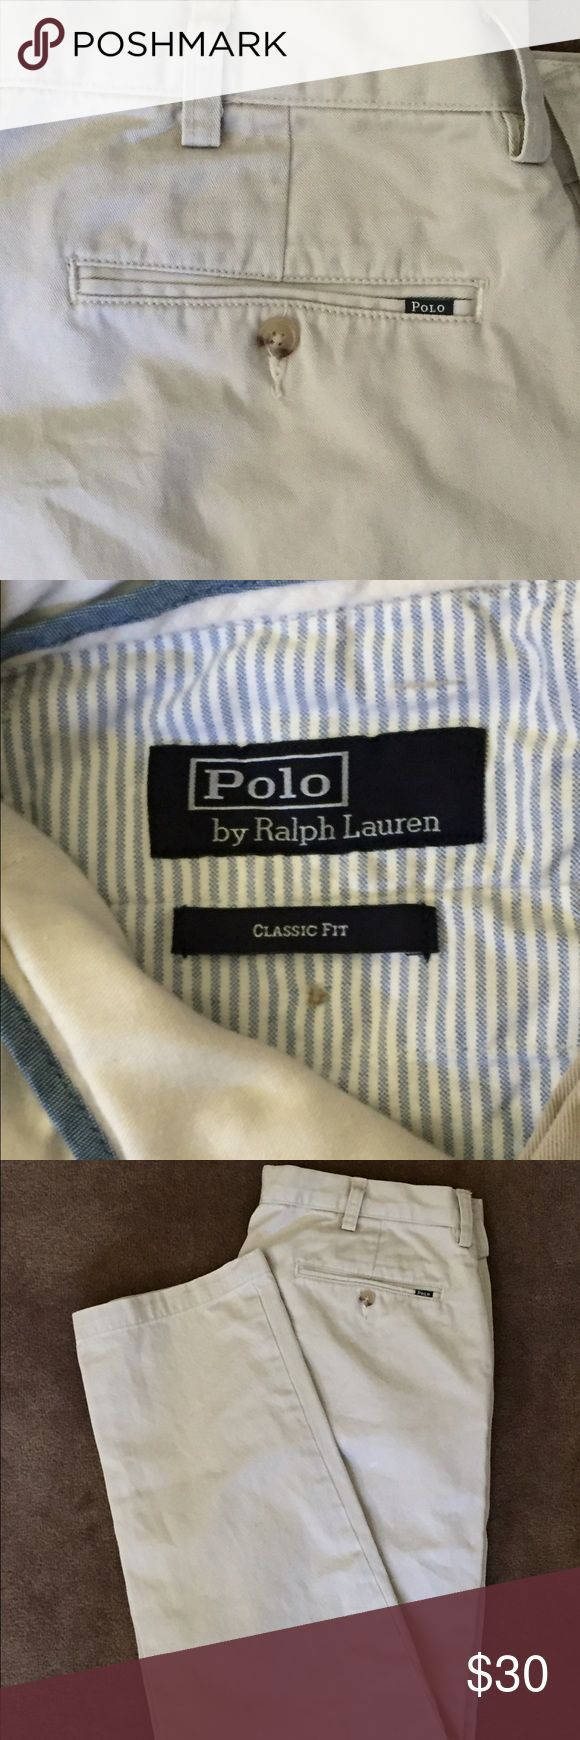 Men's Polo Khaki Pants Men's Polo khaki pants.  Size 34x32, classic fit.  Worn once.  Perfect condition. Polo by Ralph Lauren Pants Chinos & Khakis